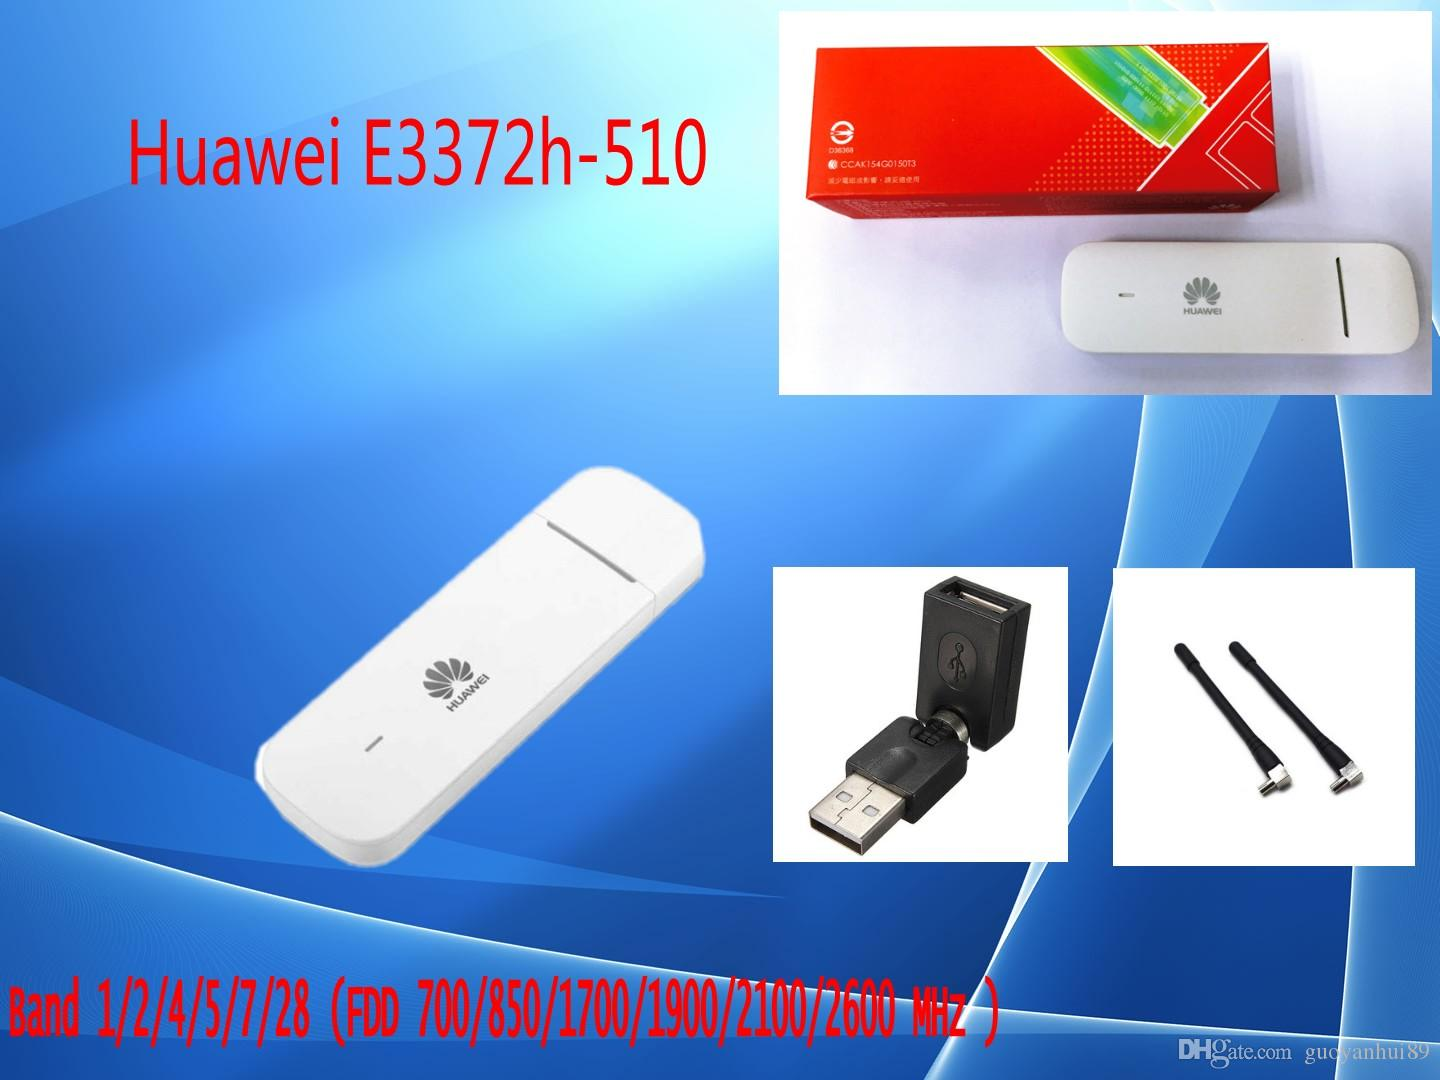 Huawei E3372h-510 LTE Band 1/2/4/5/7/28 FDD700/850/1700/1900/2100/2600MHz  4G Modem